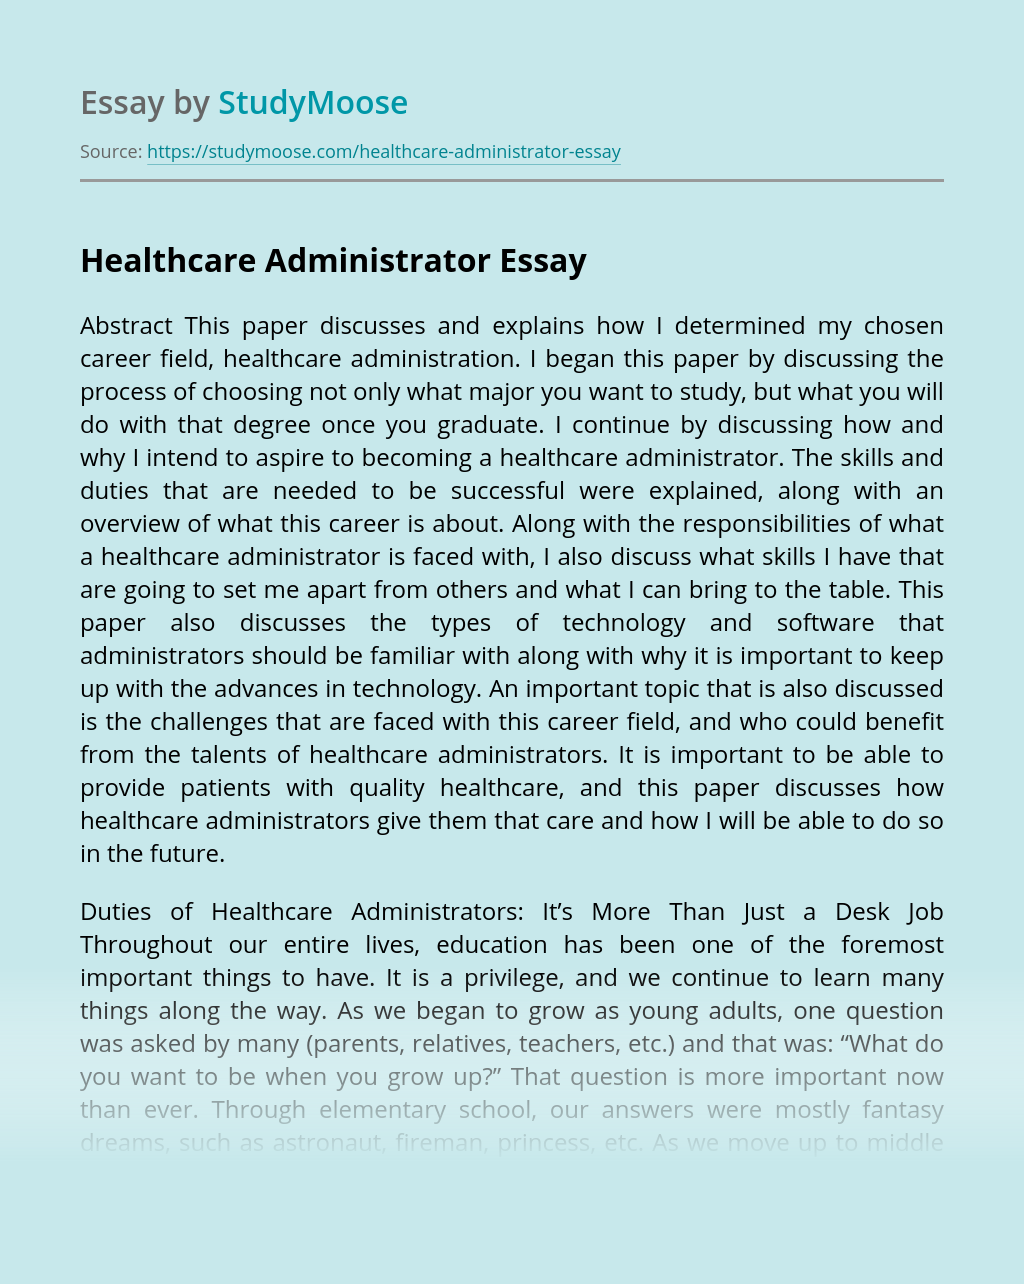 Healthcare Administrator